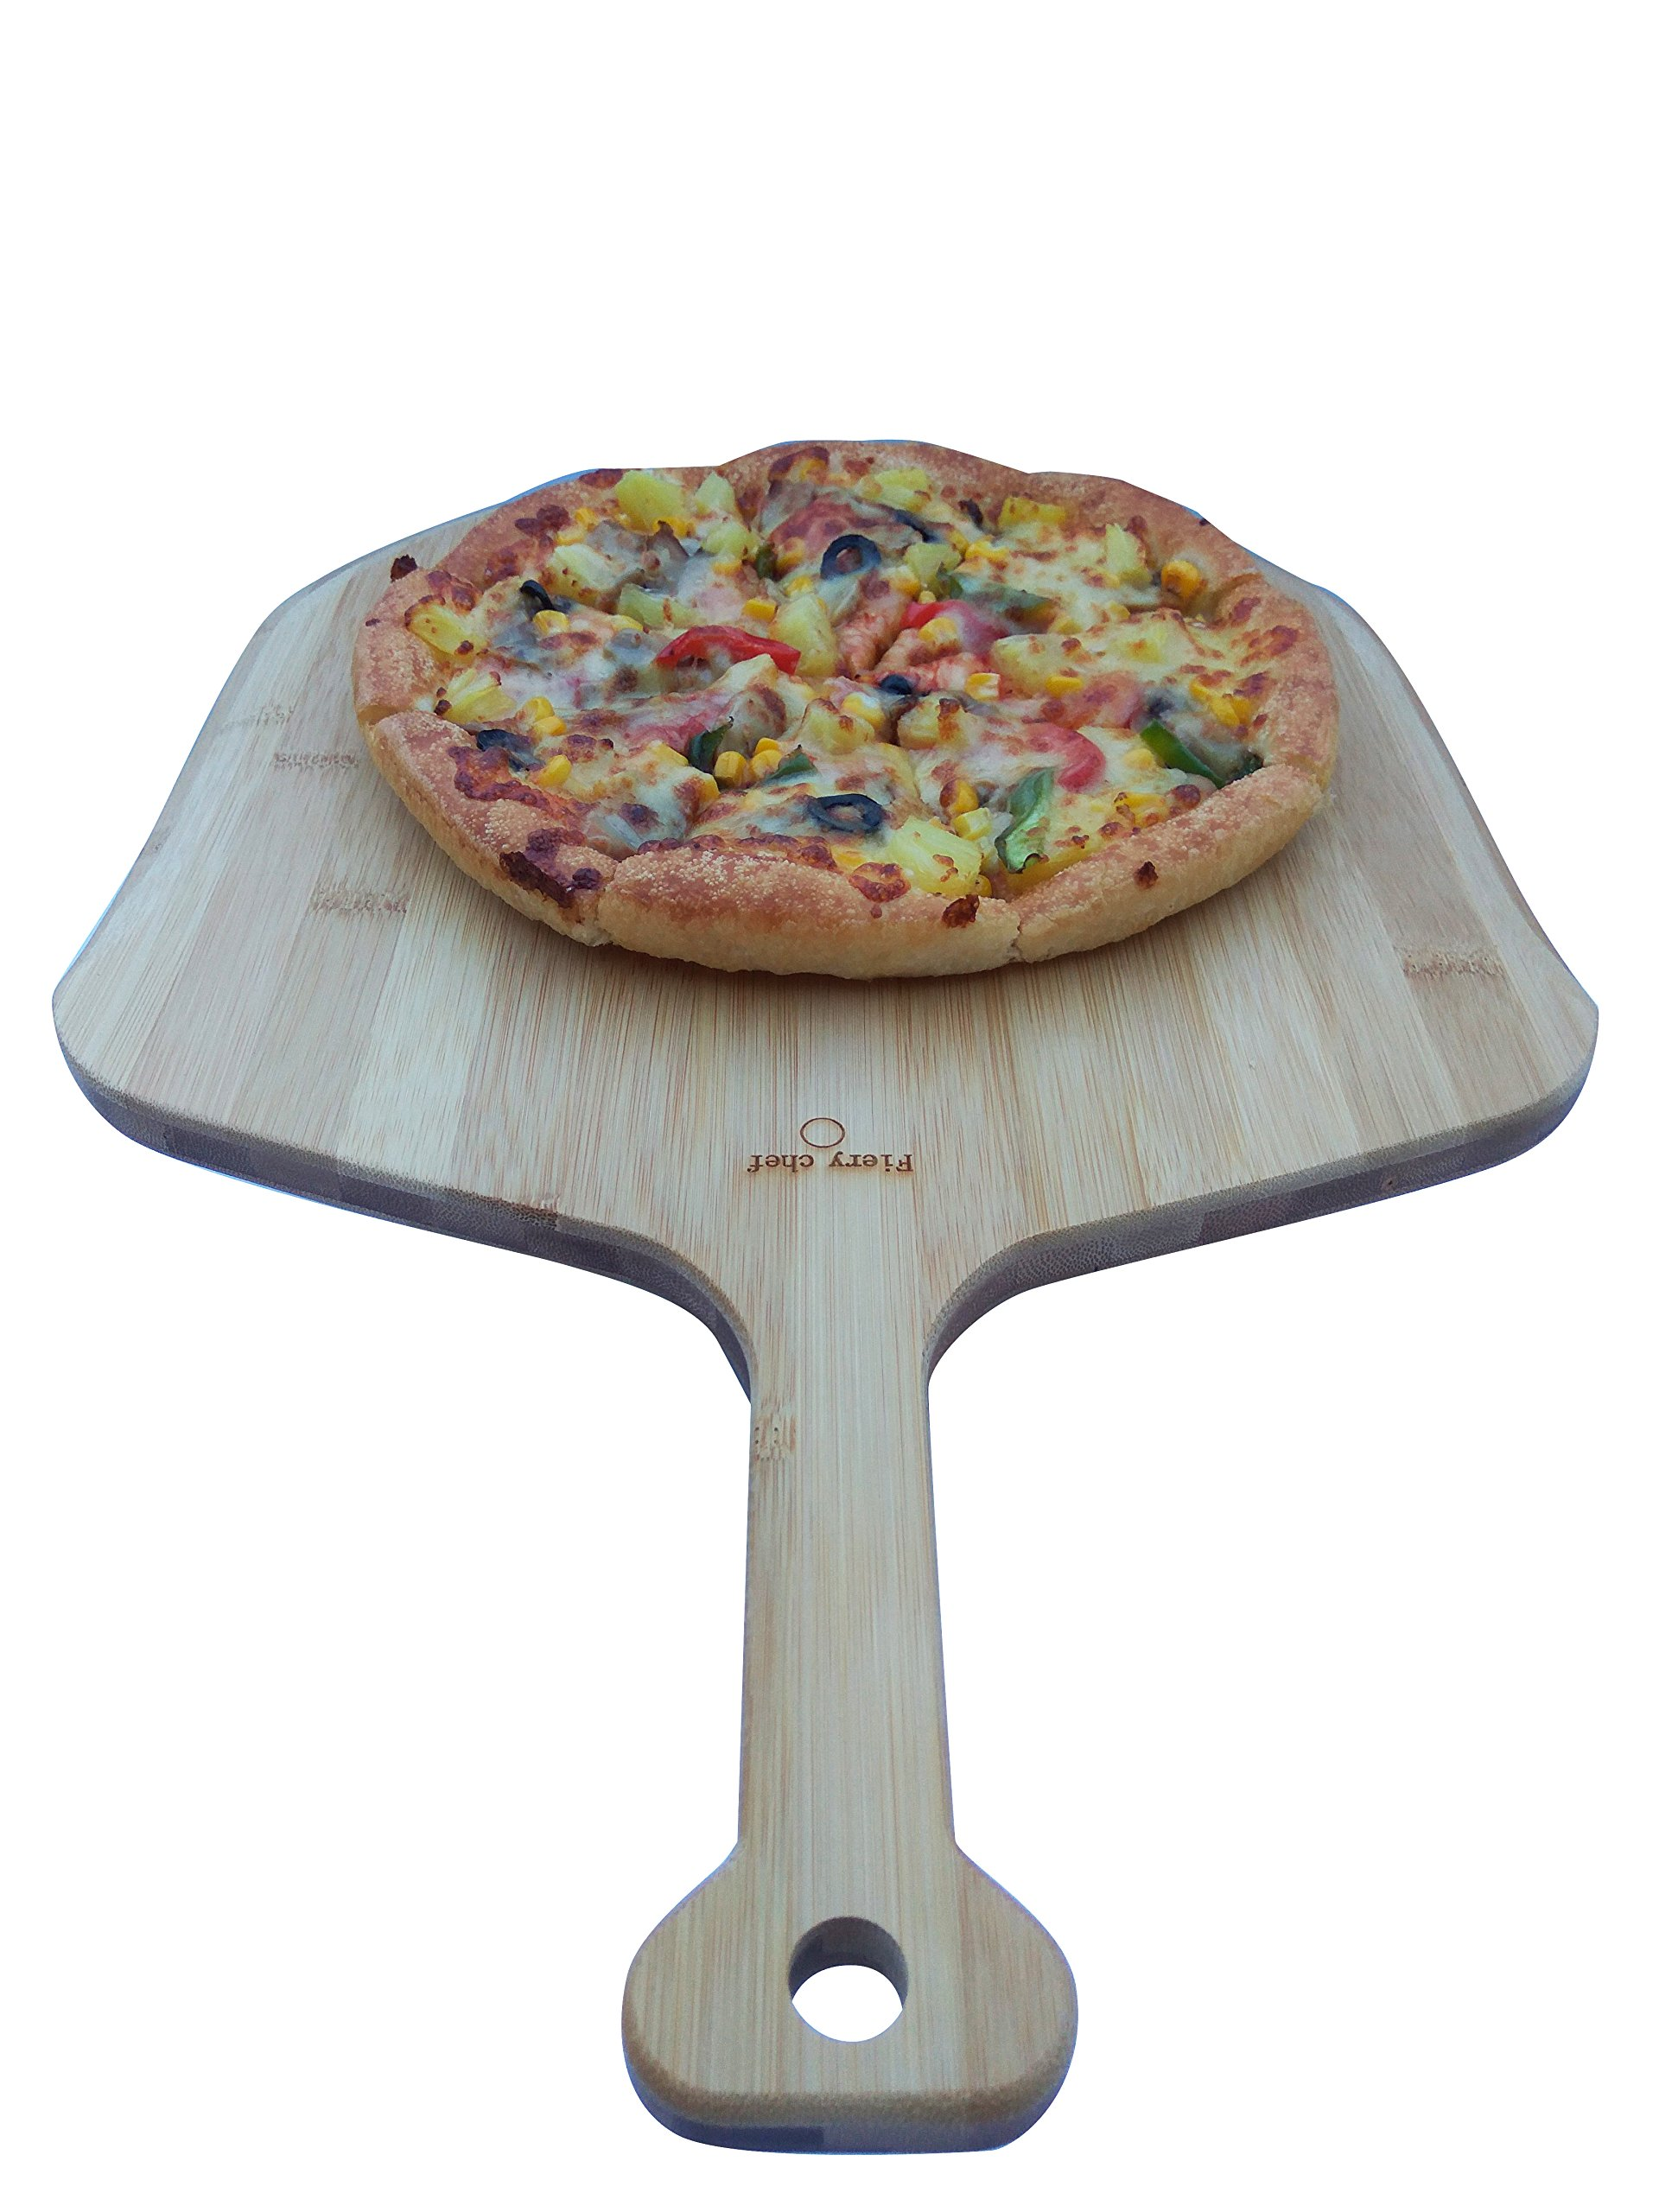 Fiery Chef Eco-friendly Multi-purpose Premium Natural Bamboo Pizza Peel - Paddle for Homemade Pizza and Bread Baking 19.7-inch x 12.6-inch